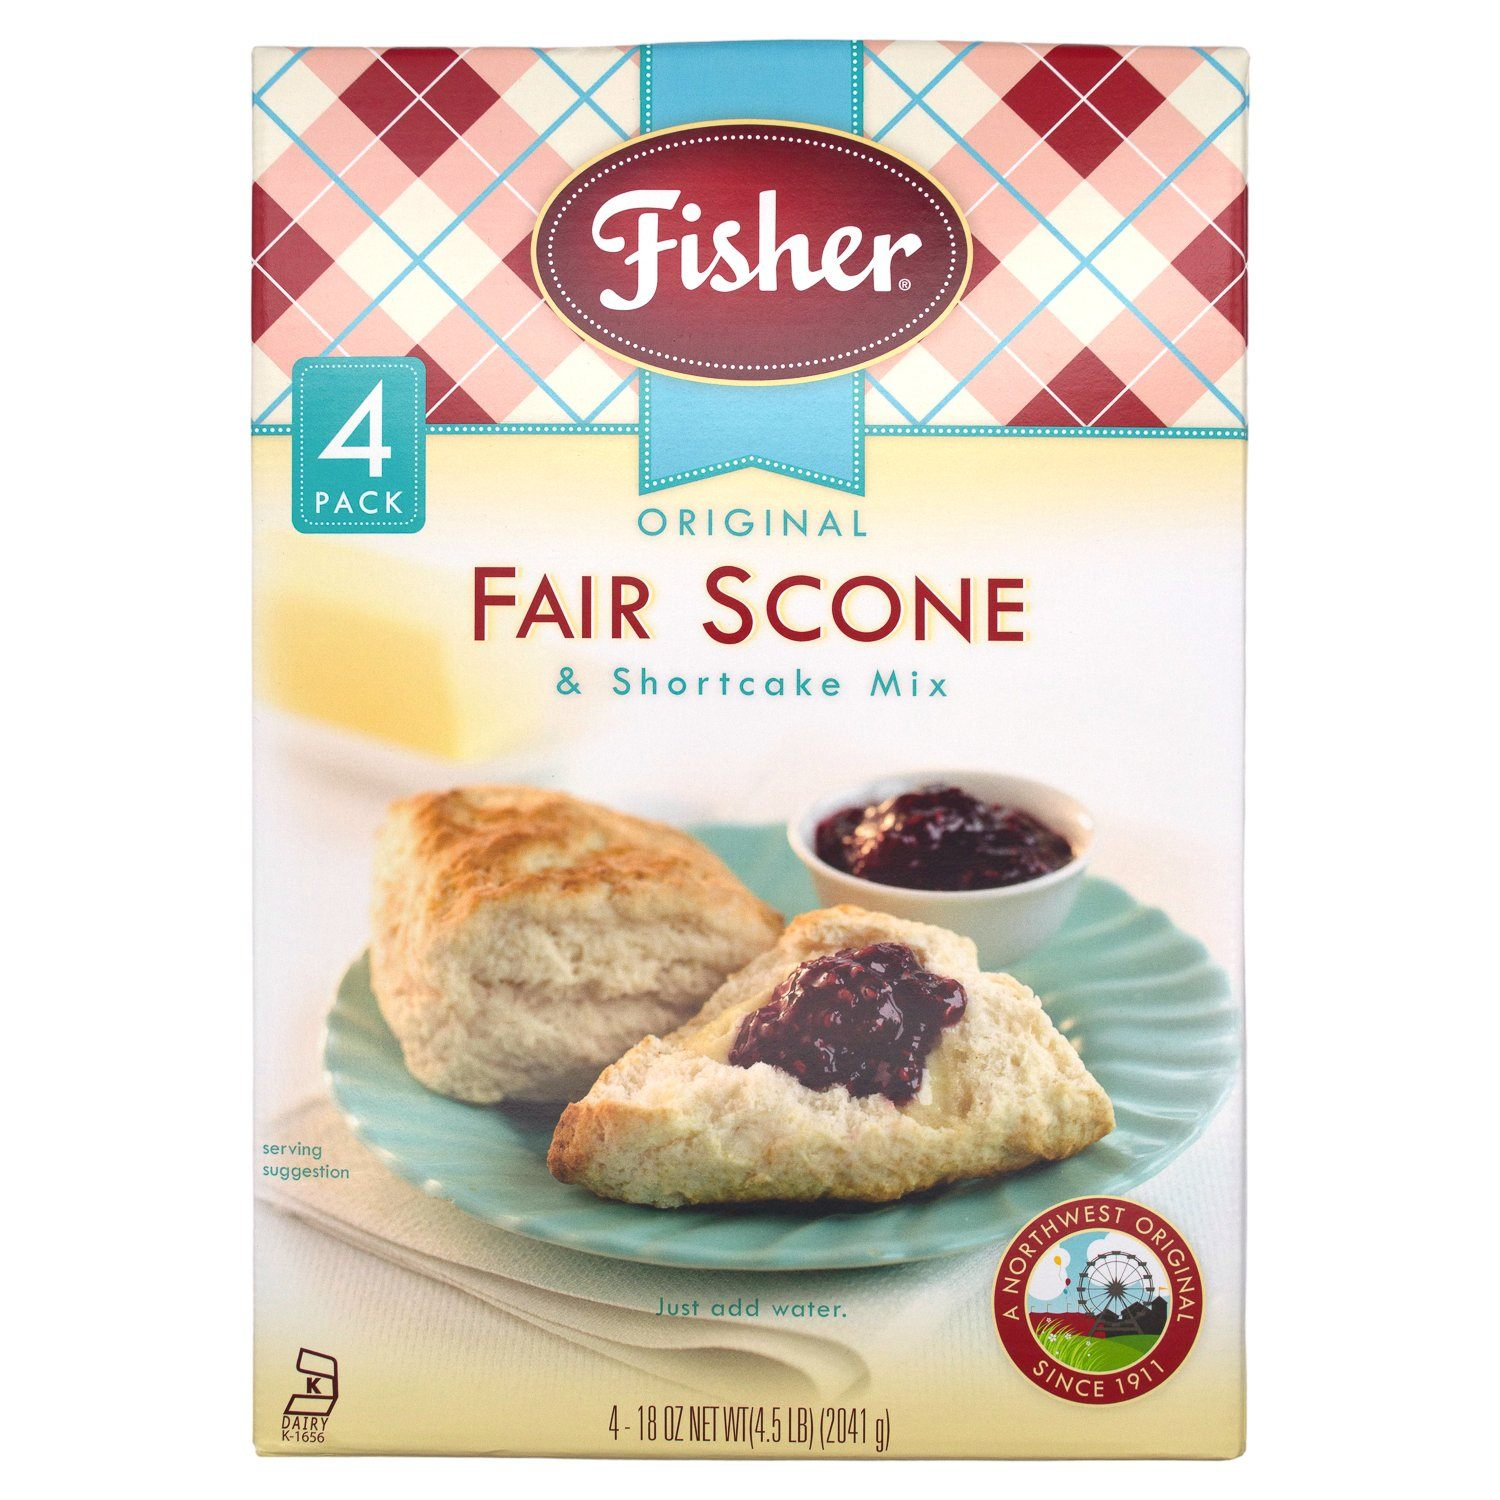 Fisher Original Fair Scone & Shortcake Mix Fisher 72 Ounce